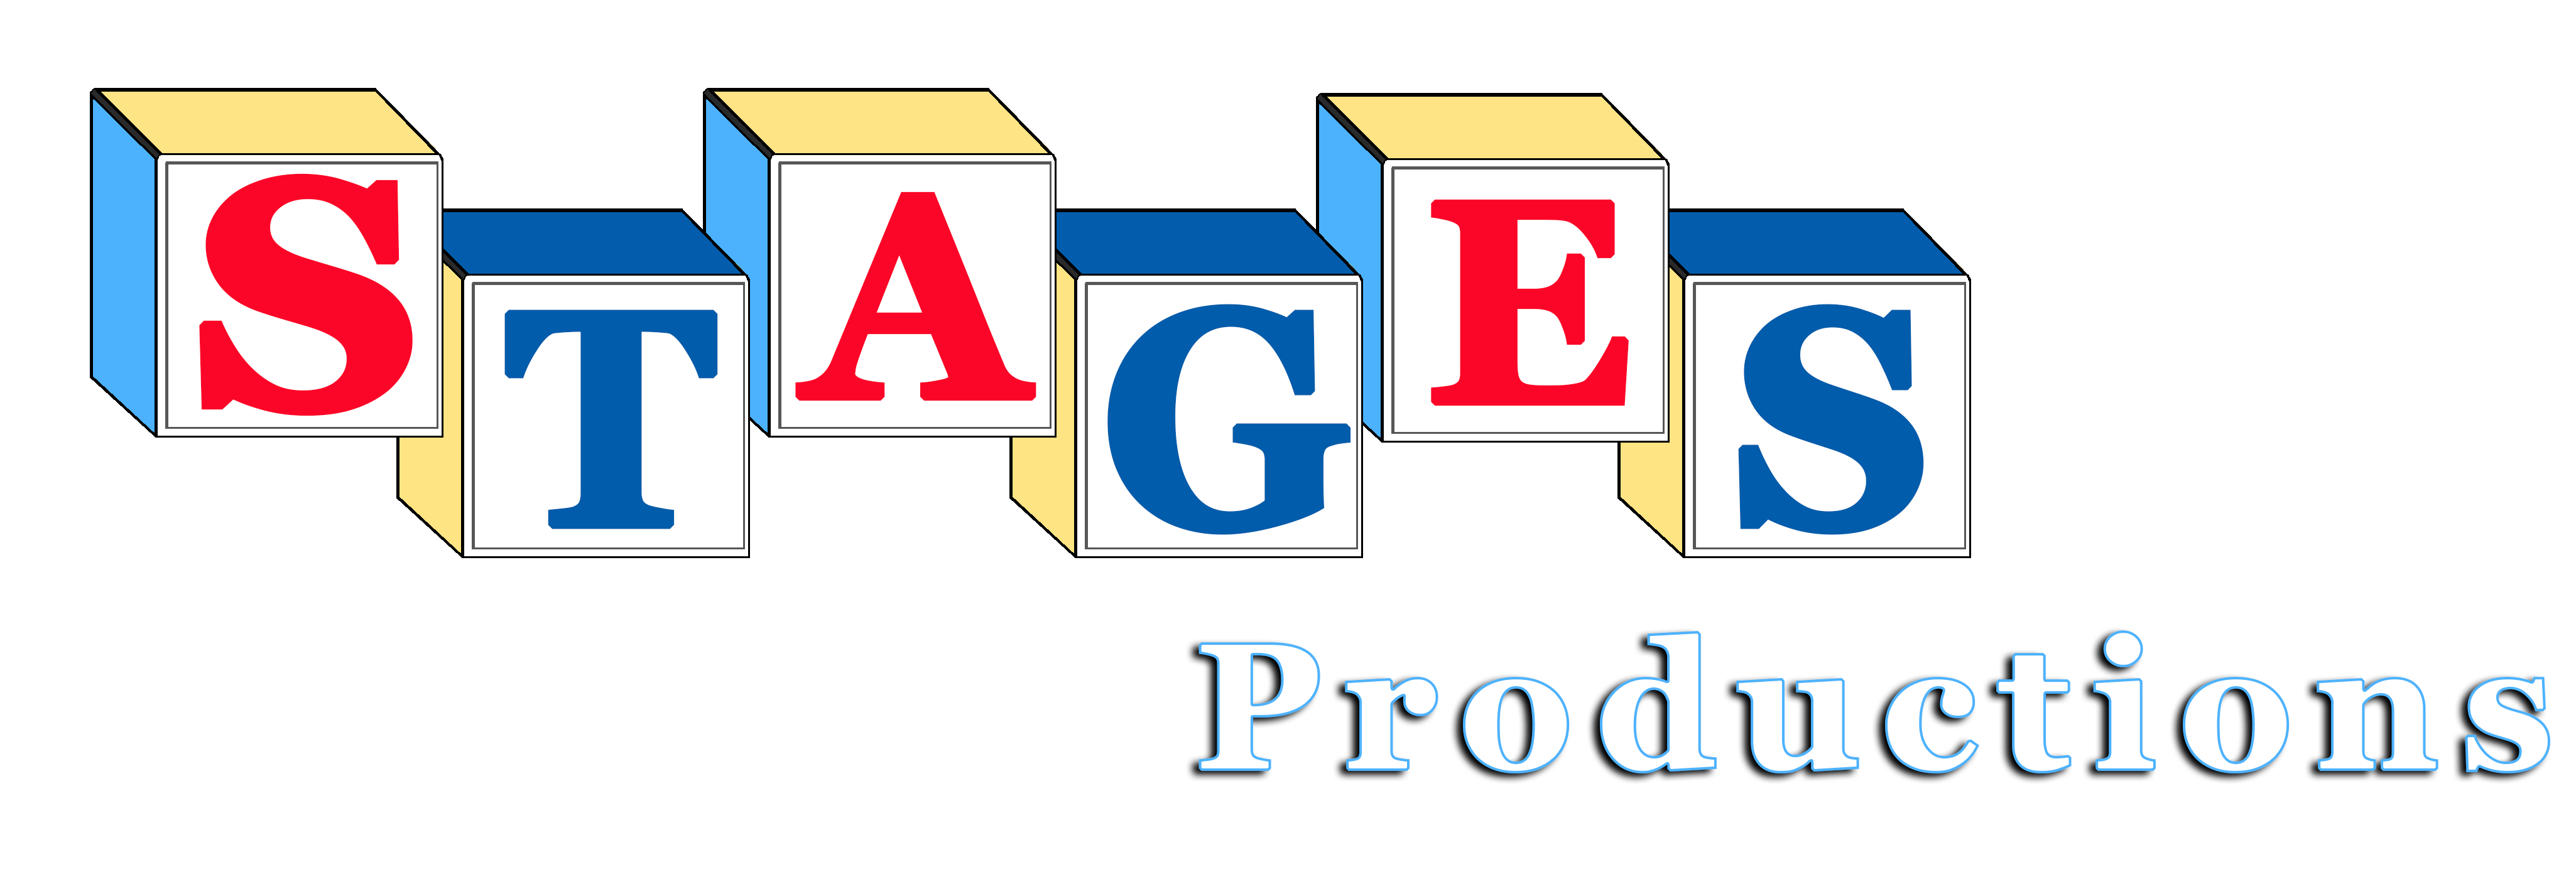 Stages Productions